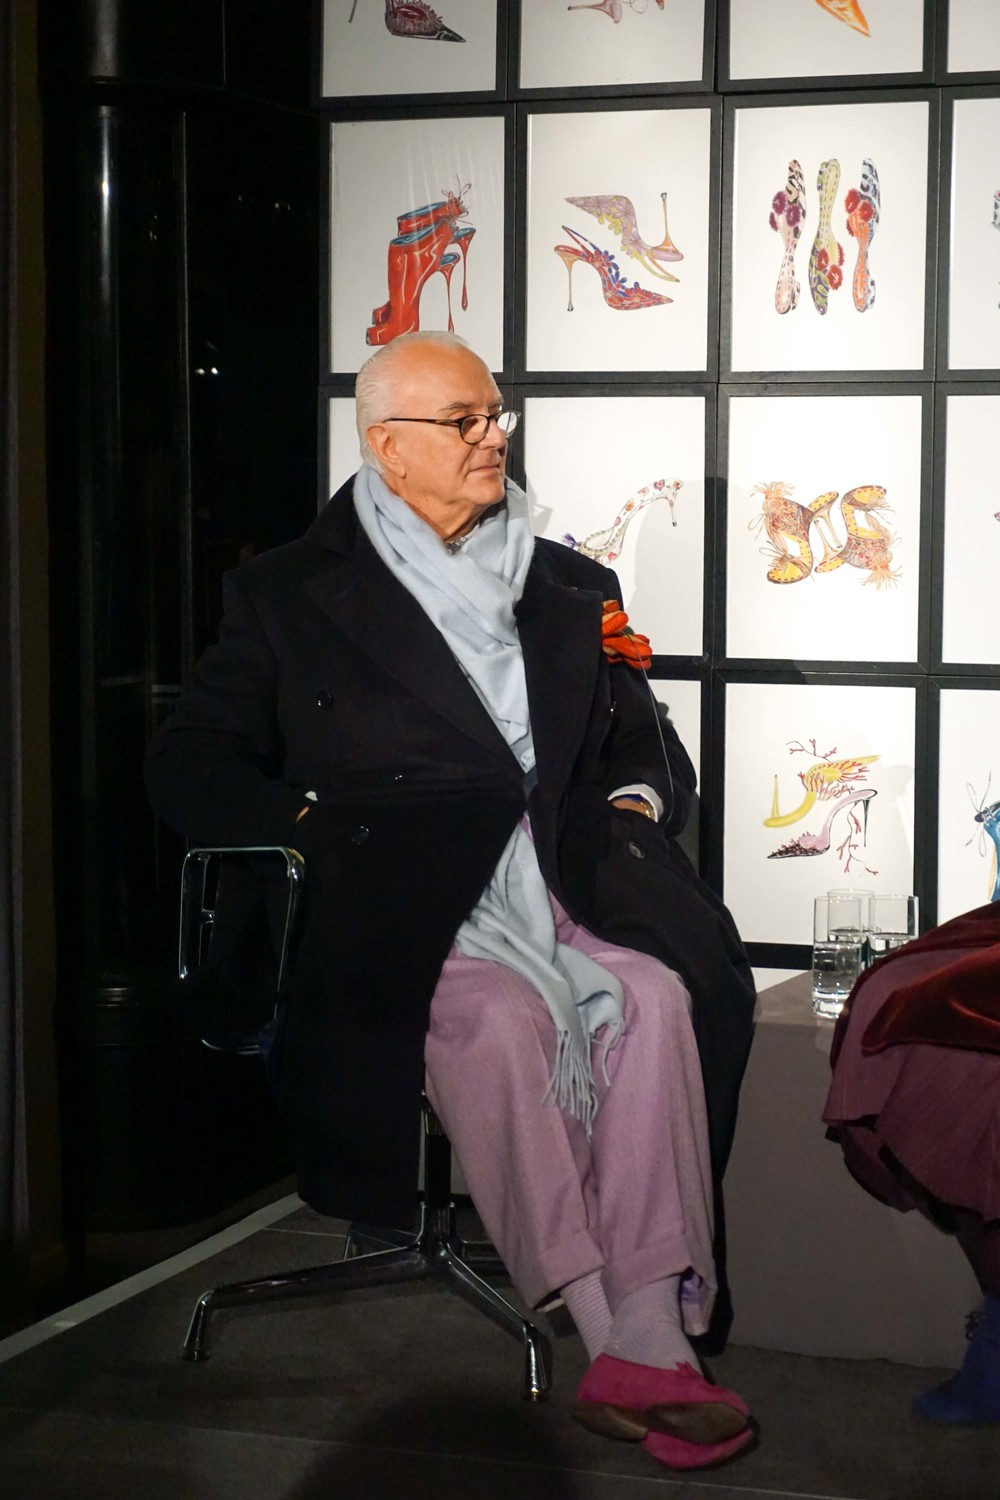 Manolo Blahnik speaking at Burlington Arcade, Mayfair.